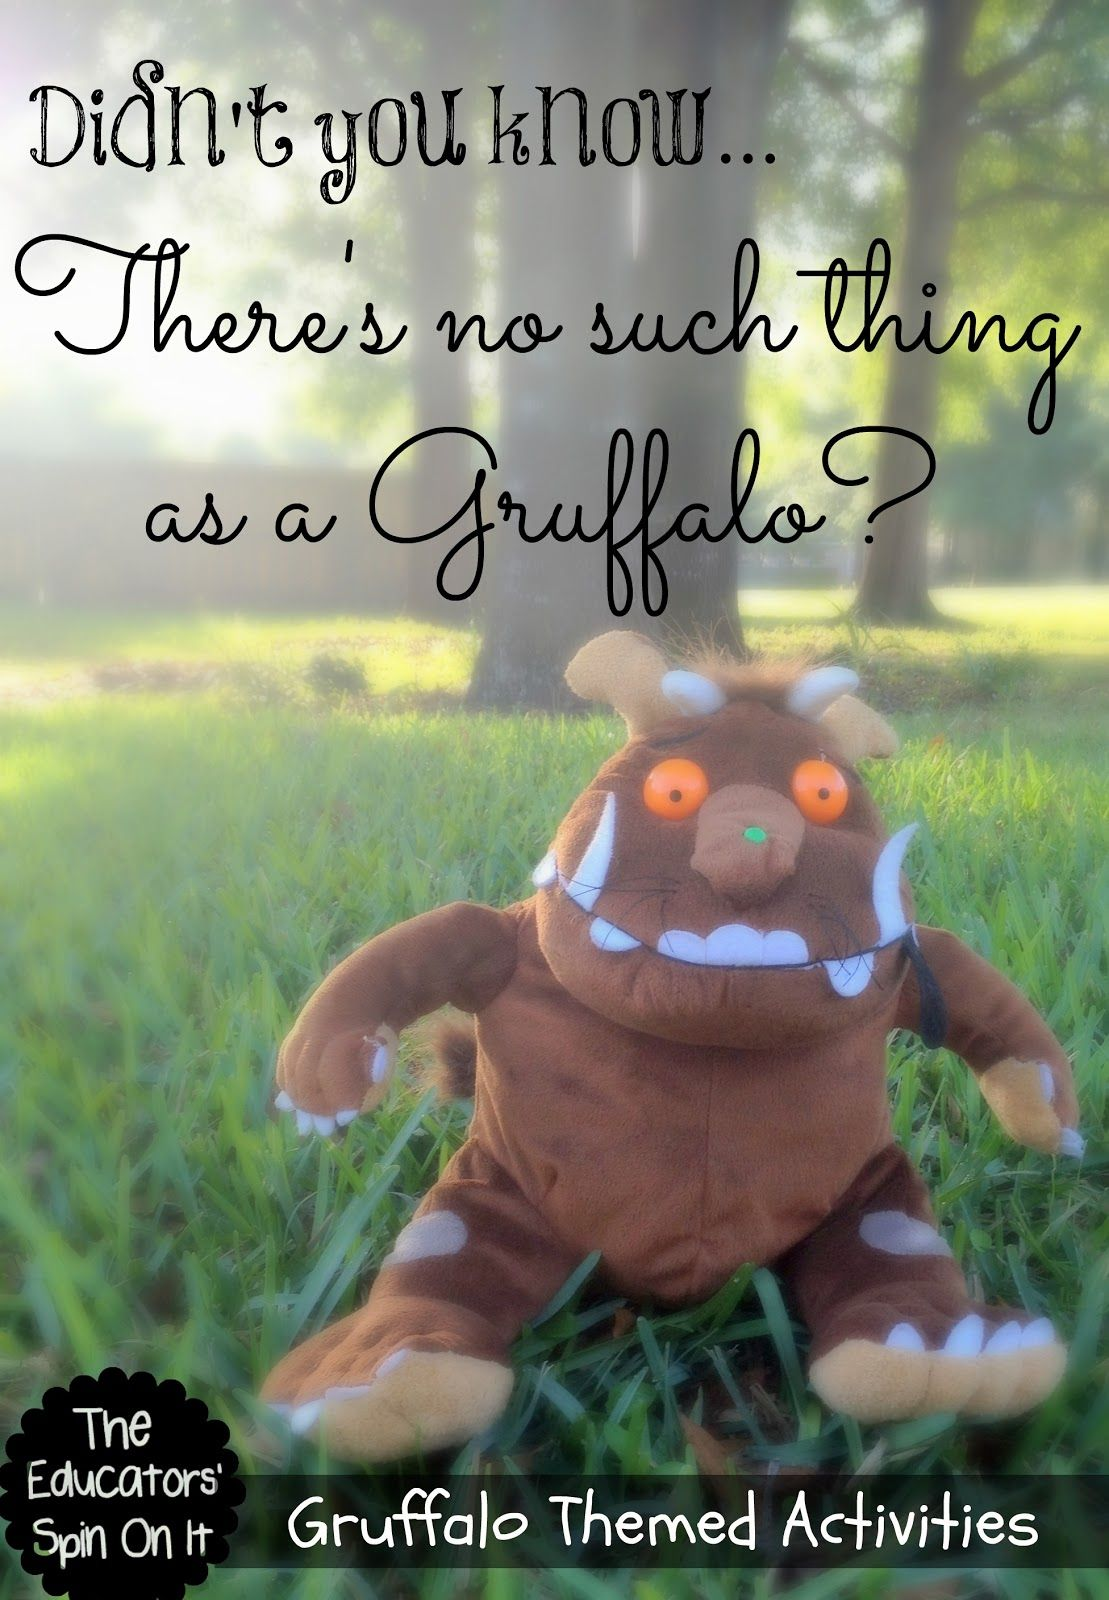 The Gruffalo Themed Activities